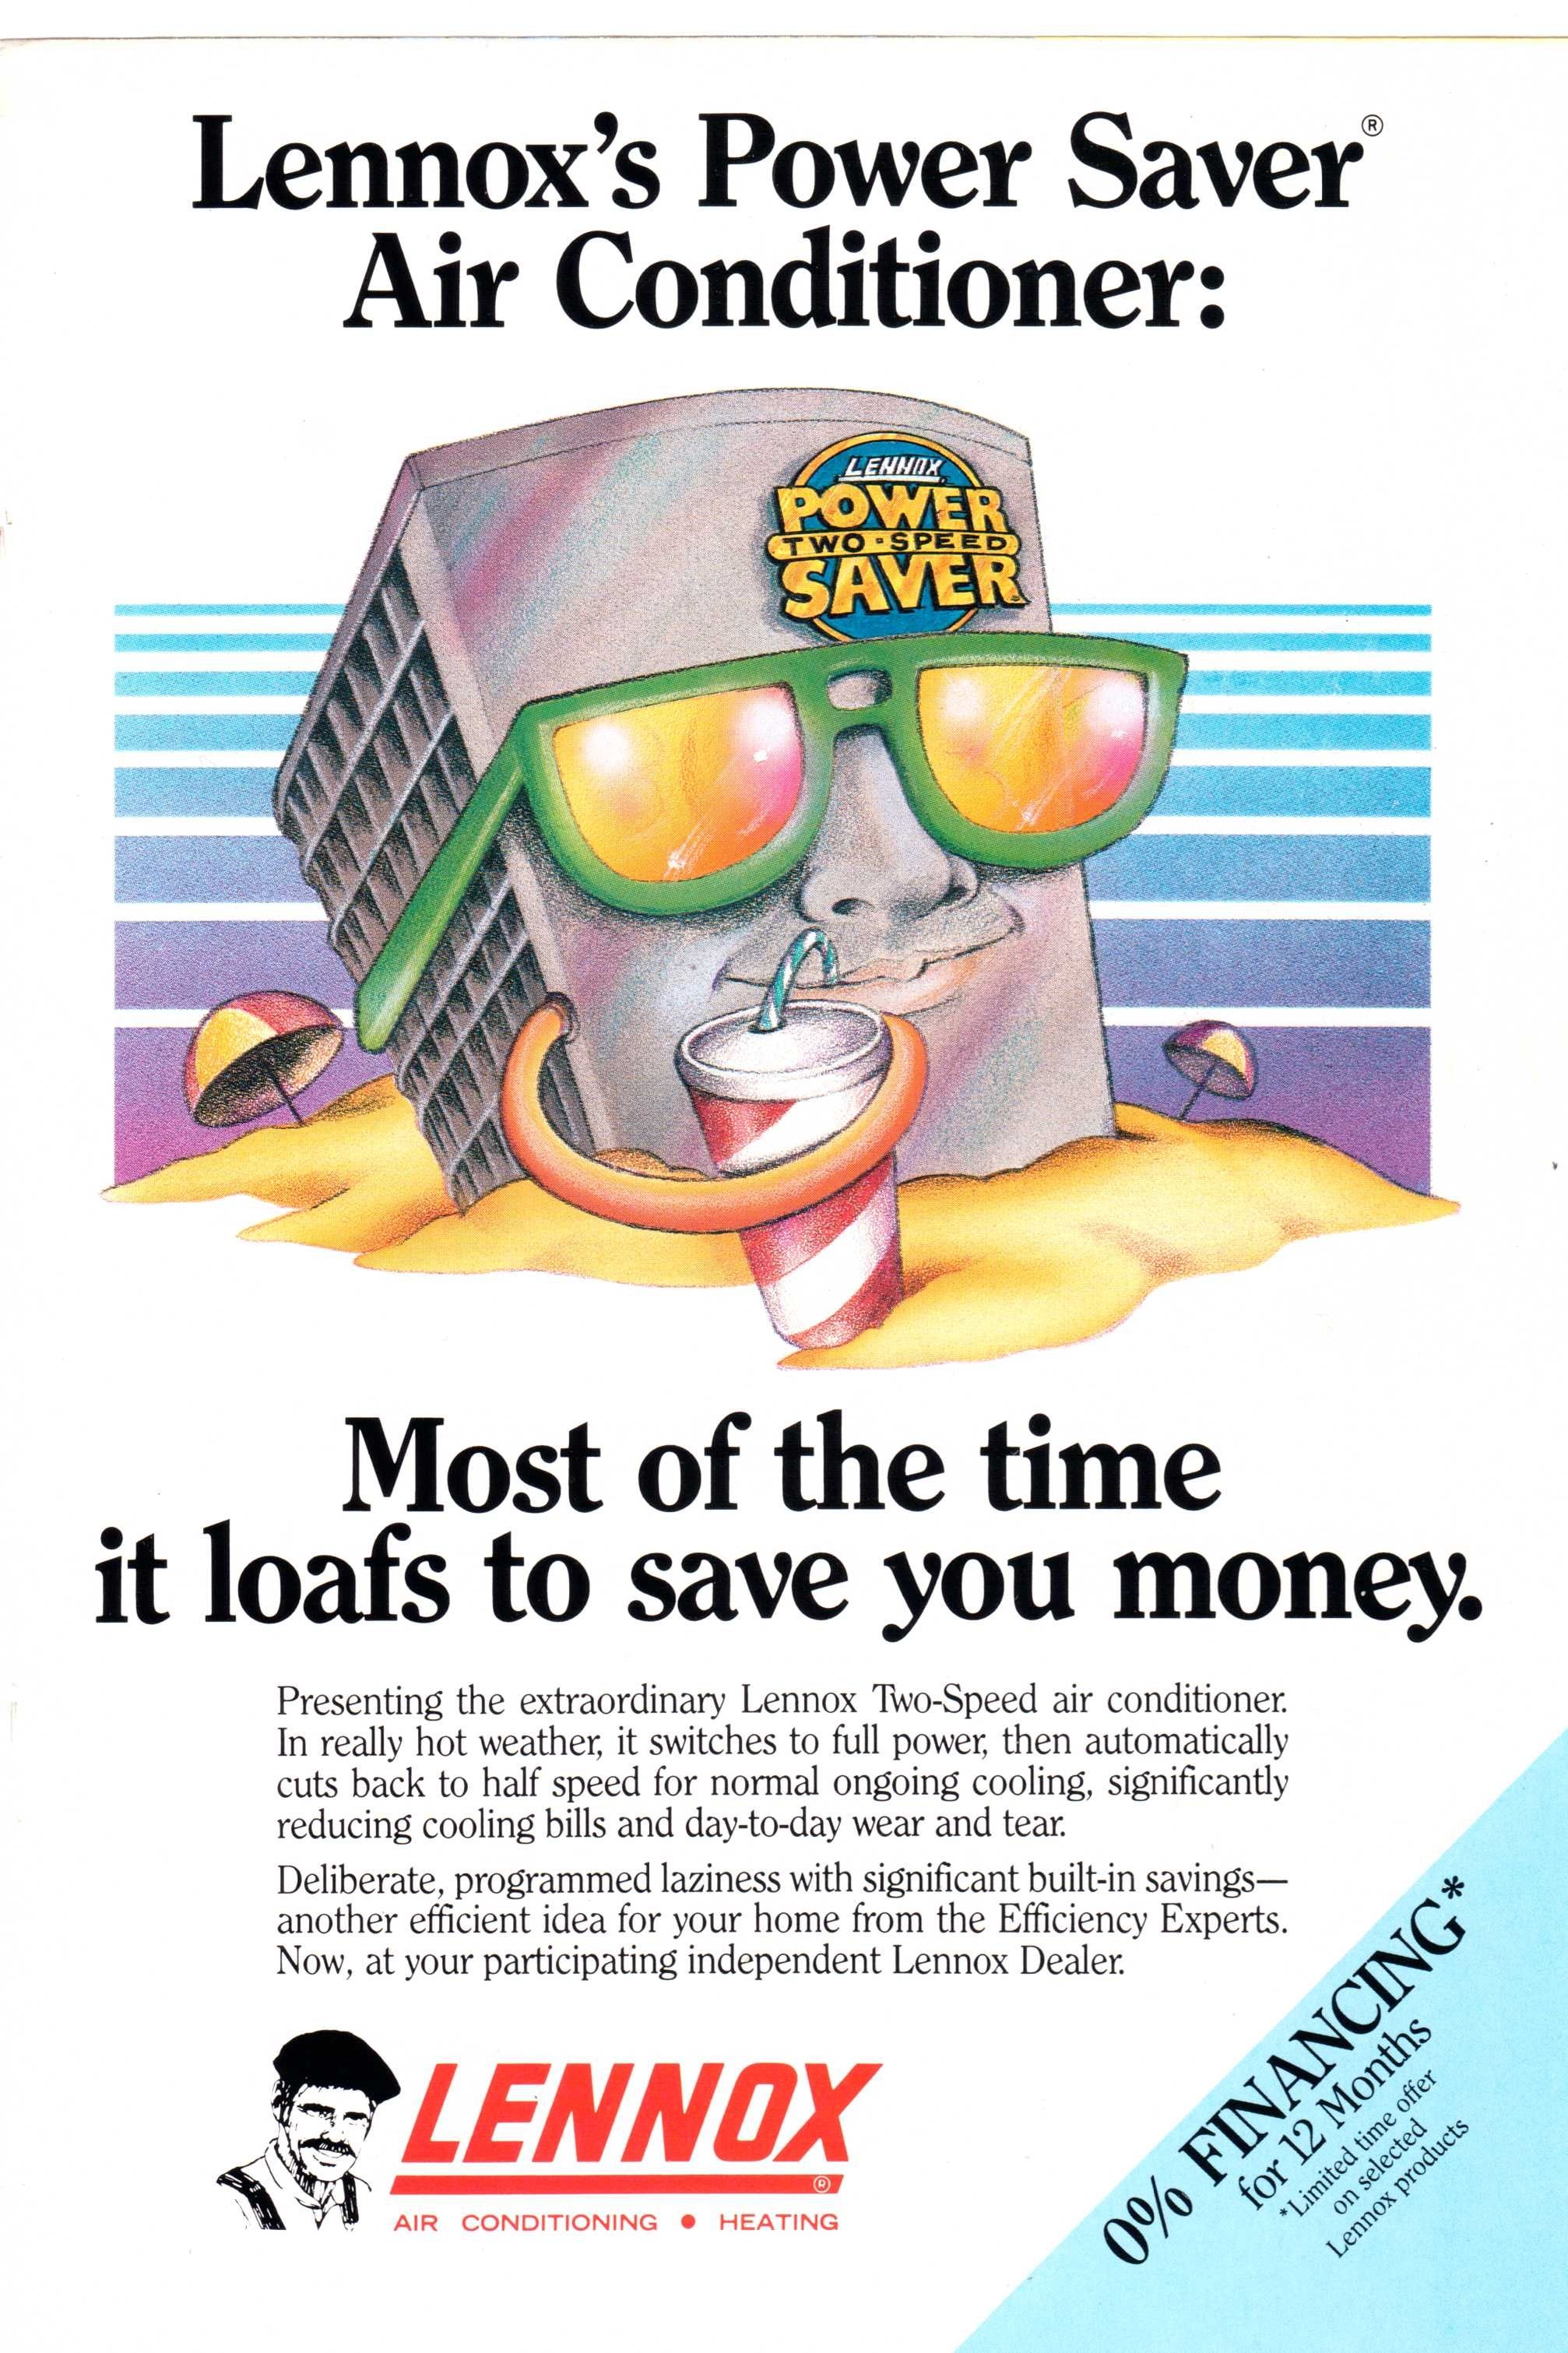 1987 Lennox Ac And Heating Ad From National Geographic May 1987 Air Conditioner Power Saver Savers